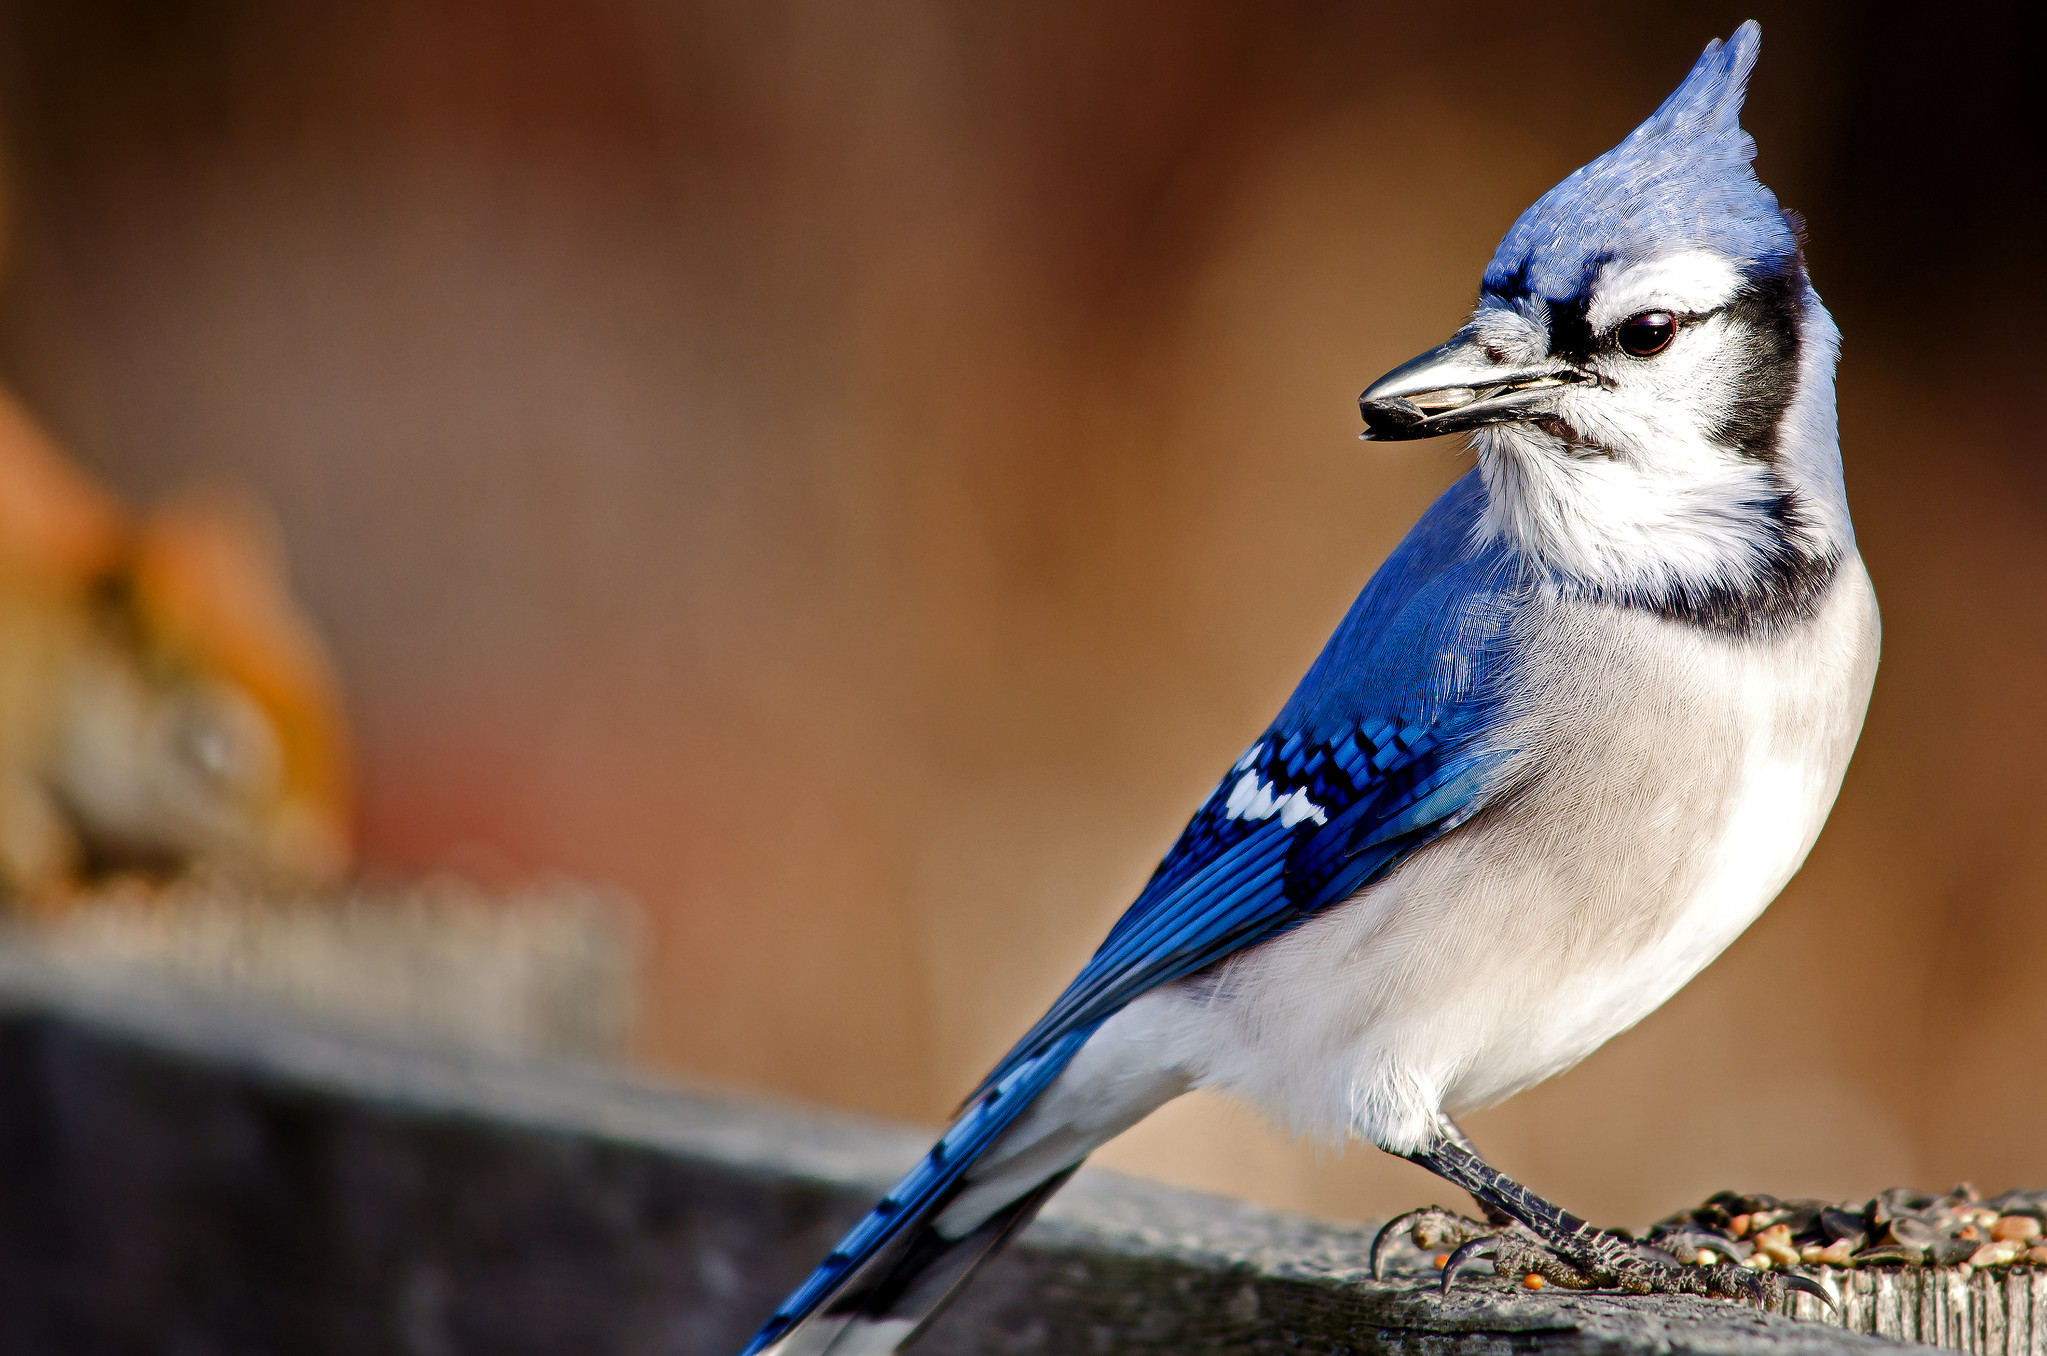 Blue Jay and Red Squirrel | Male Blue Jay spots the Red ...